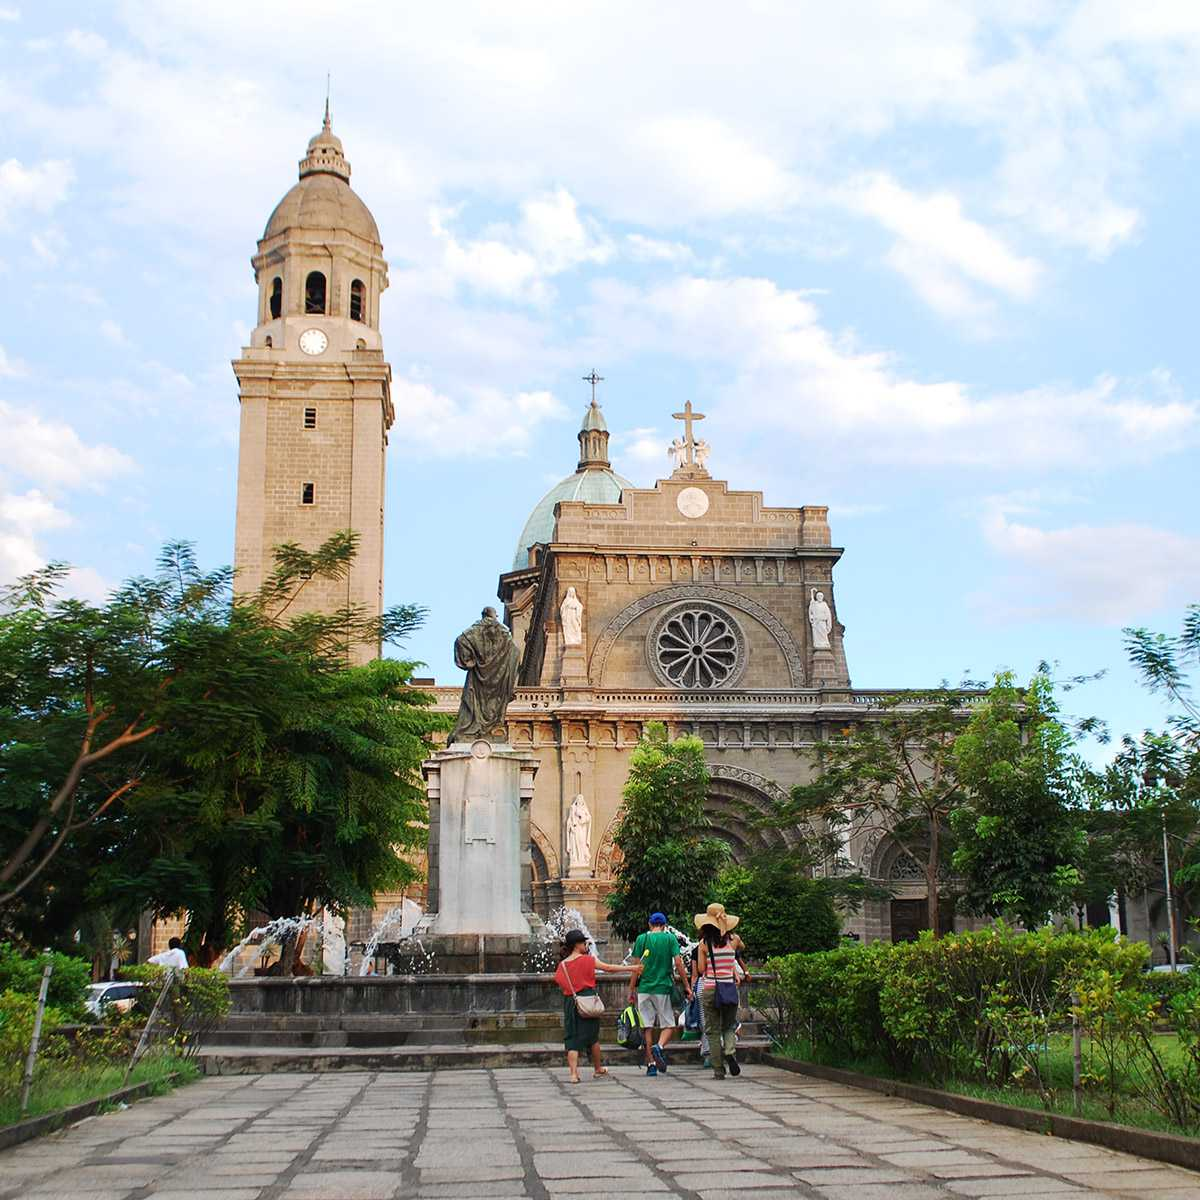 Manila Cathedral, as seen from Plaza Roma